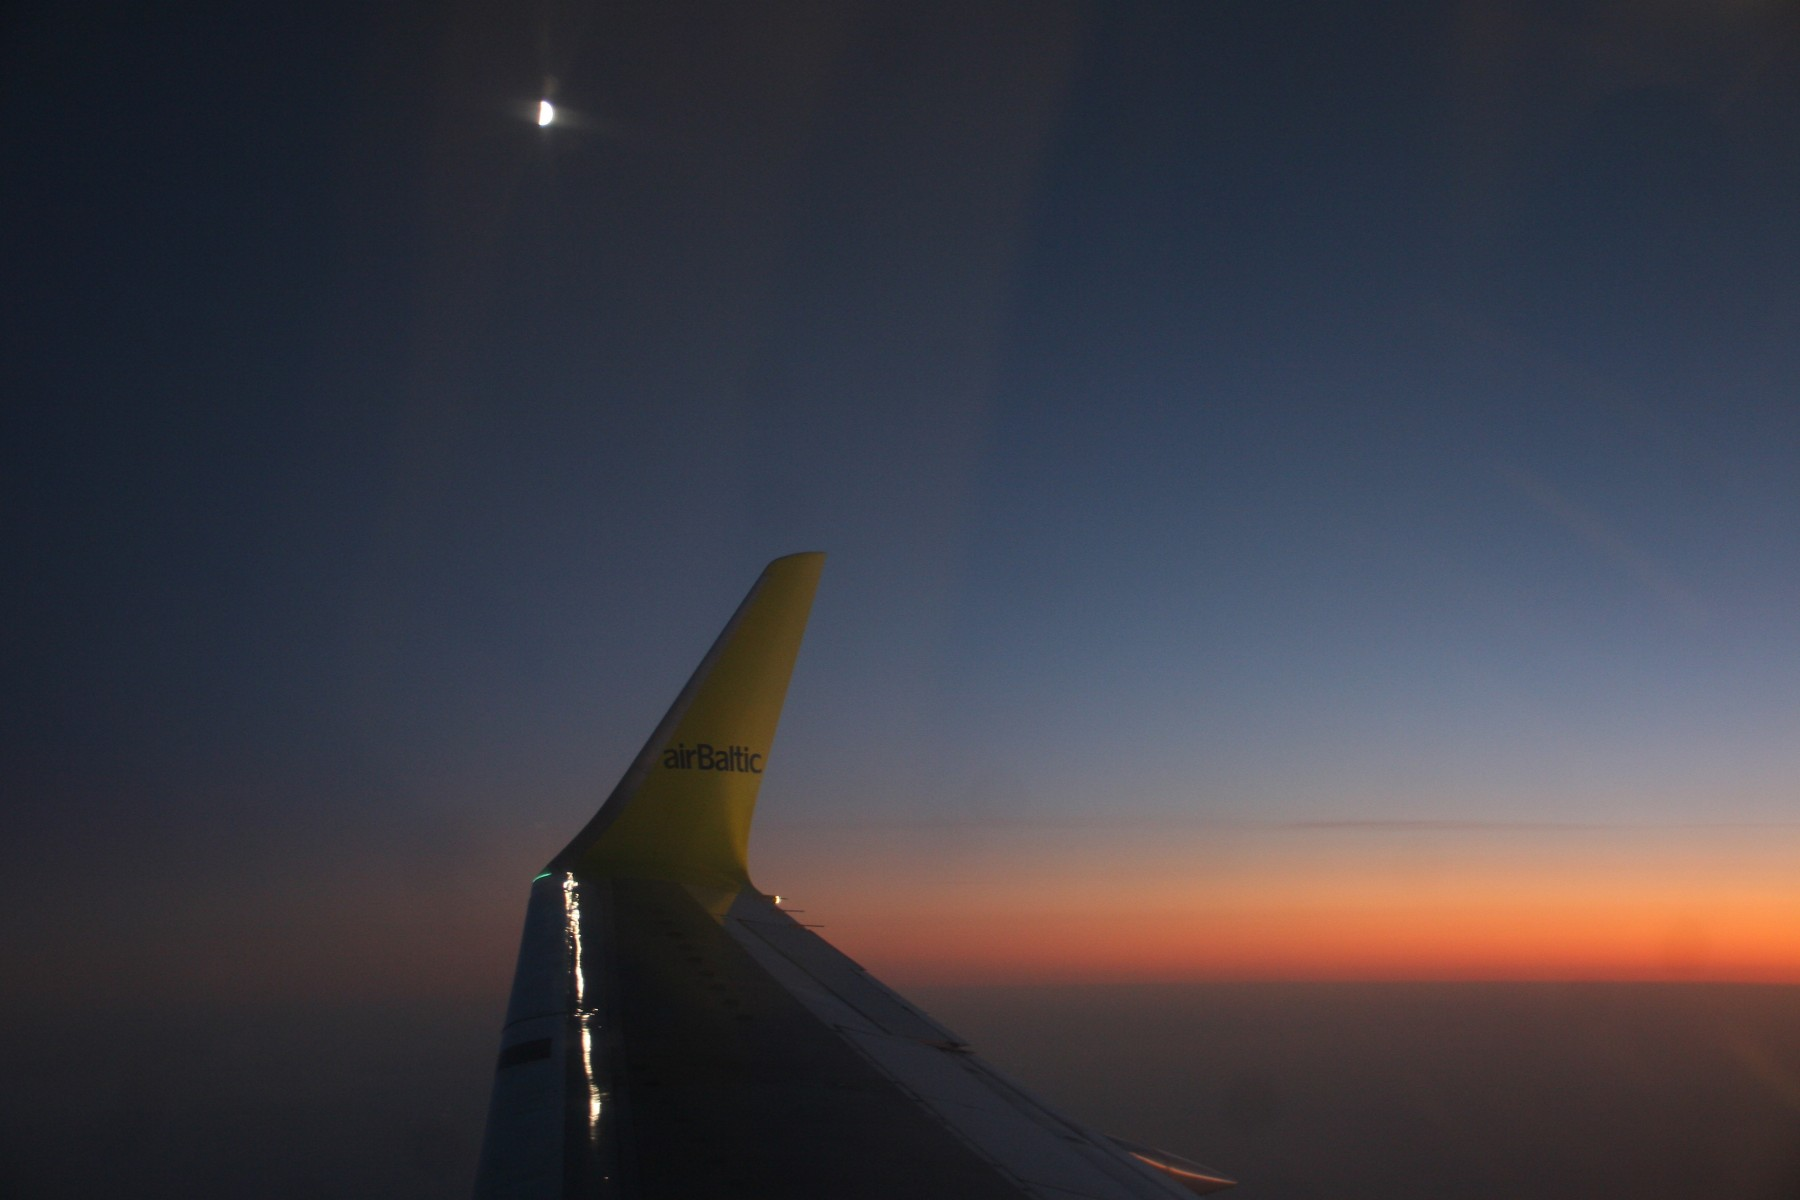 Lune vue depuis l'avion, Air Baltic